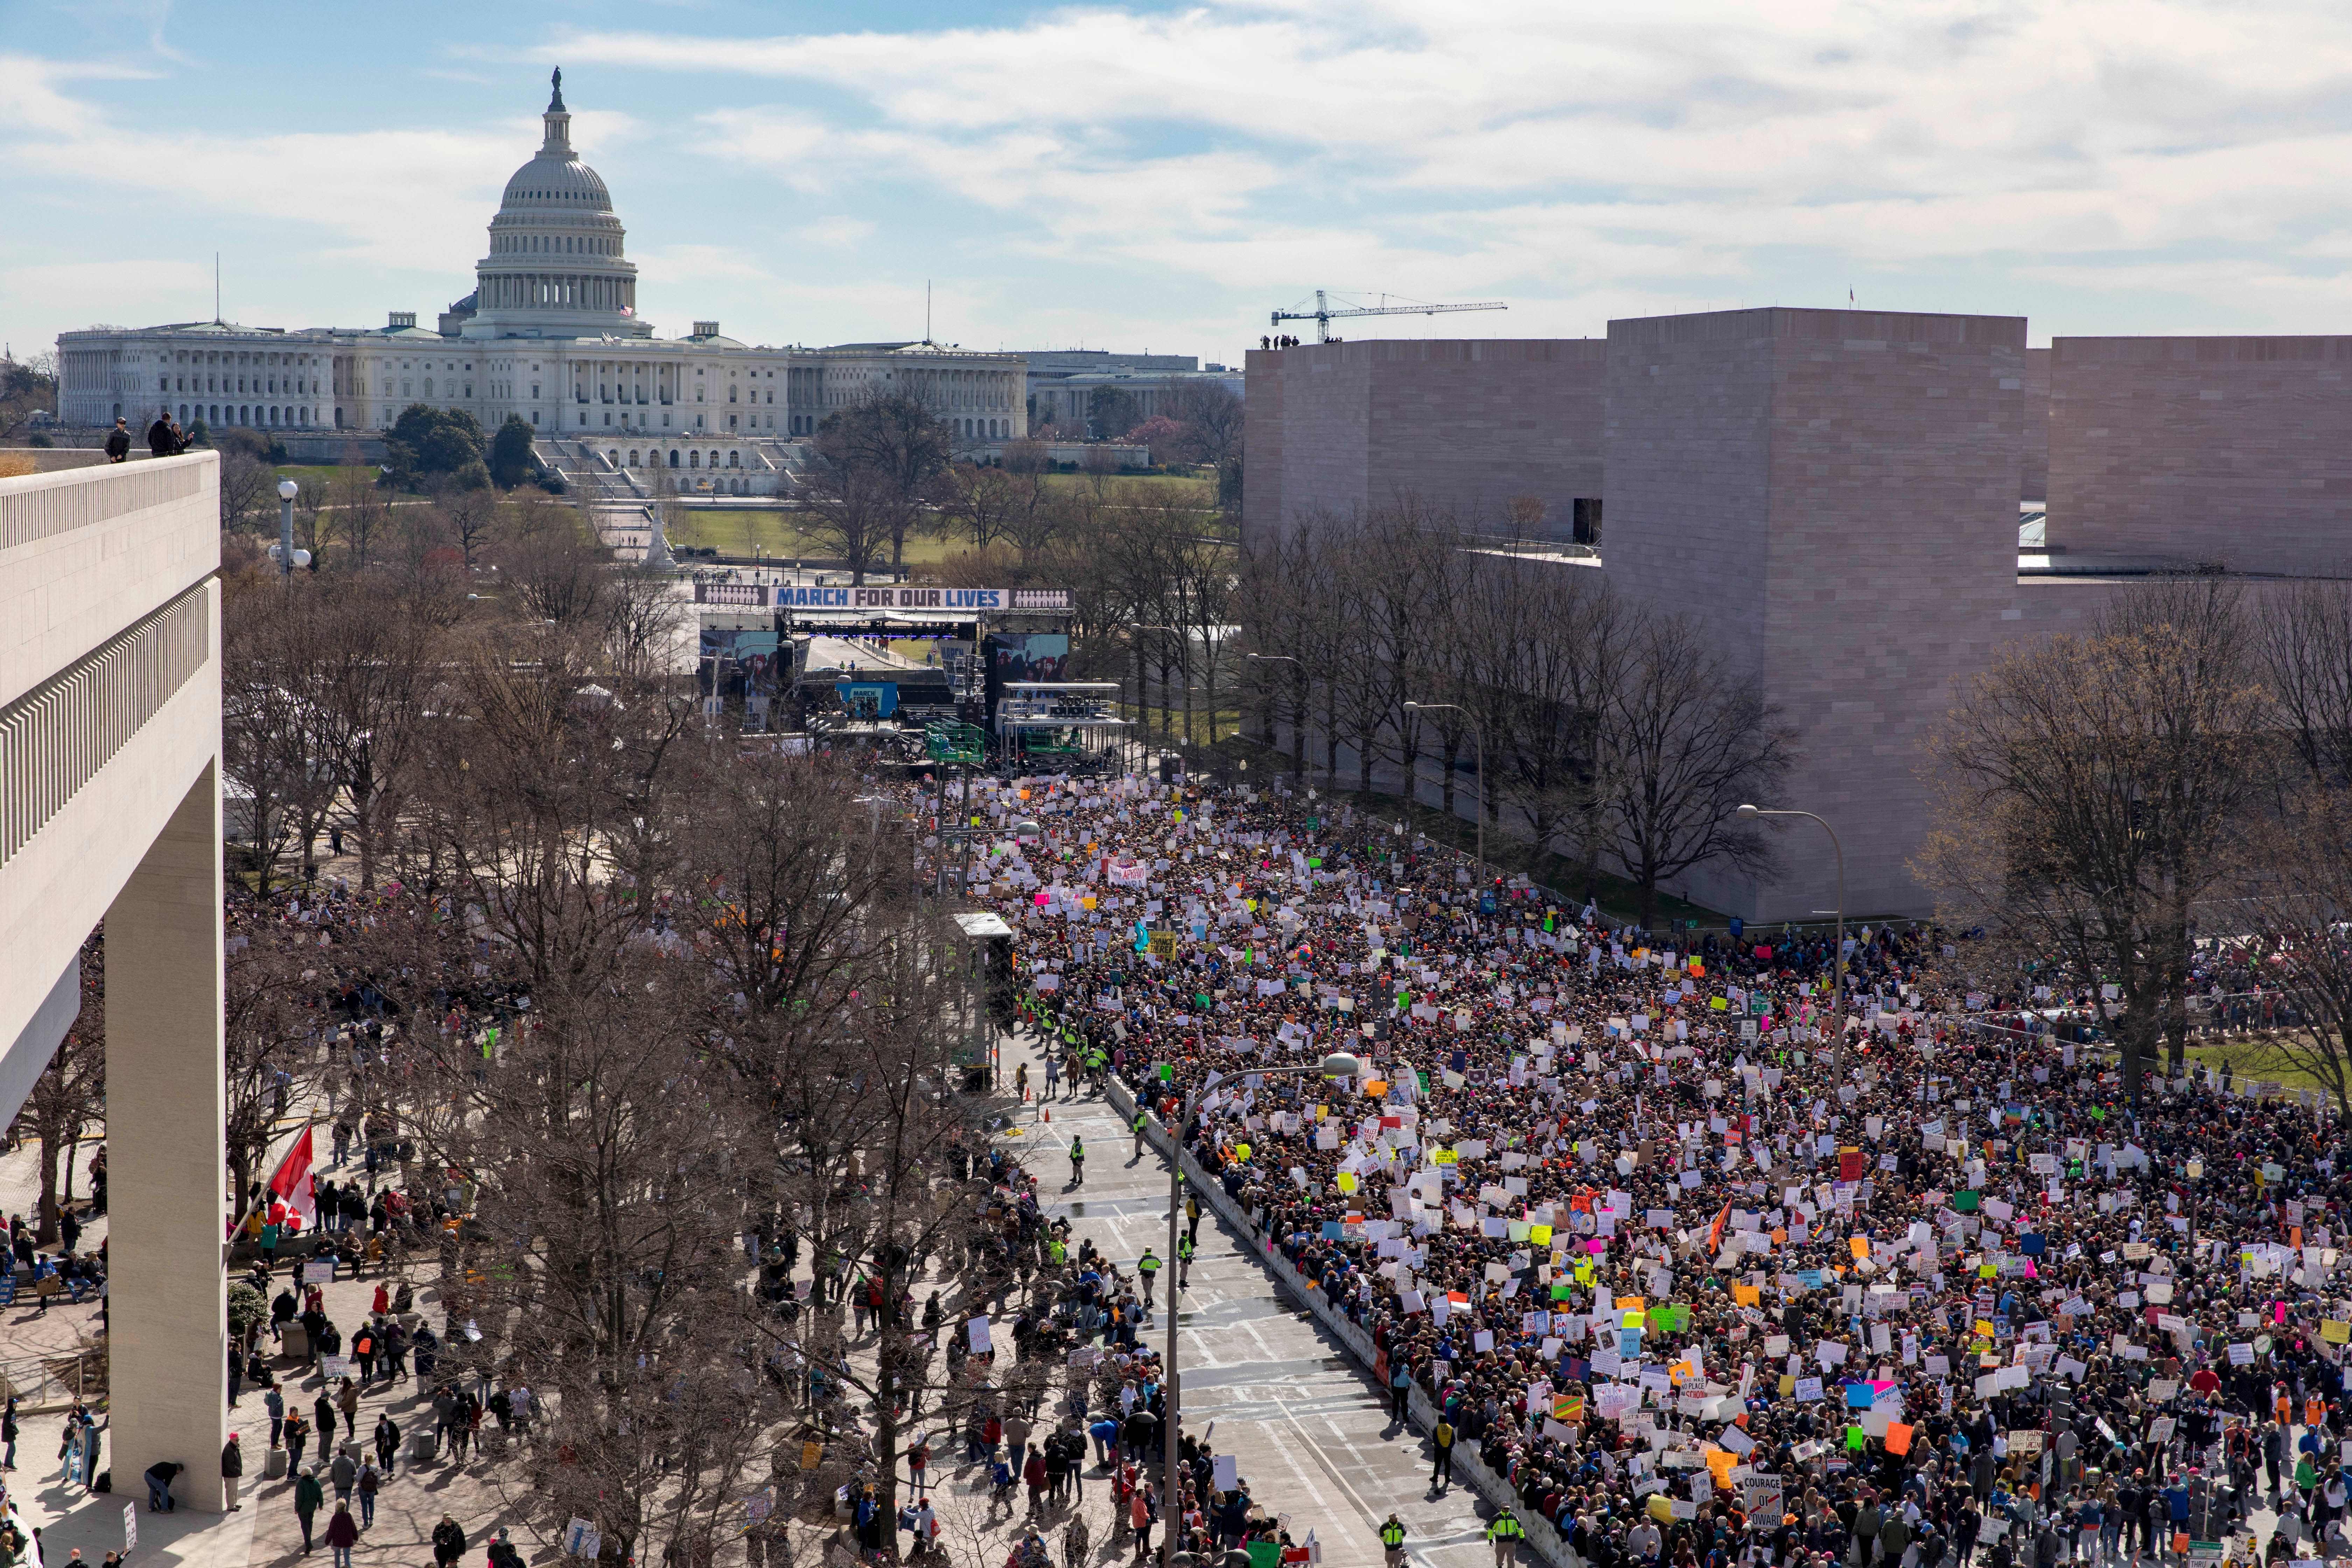 The crowd at the March for Our Lives Rally as seen from the roof of the Newseum in Washington, DC on March 24, 2018. Galvanized by a massacre at a Florida high school, hundreds of thousands of Americans are expected to take to the streets in cities across the United States on Saturday in the biggest protest for gun control in a generation. (ALEX EDELMAN/AFP/Getty Images)